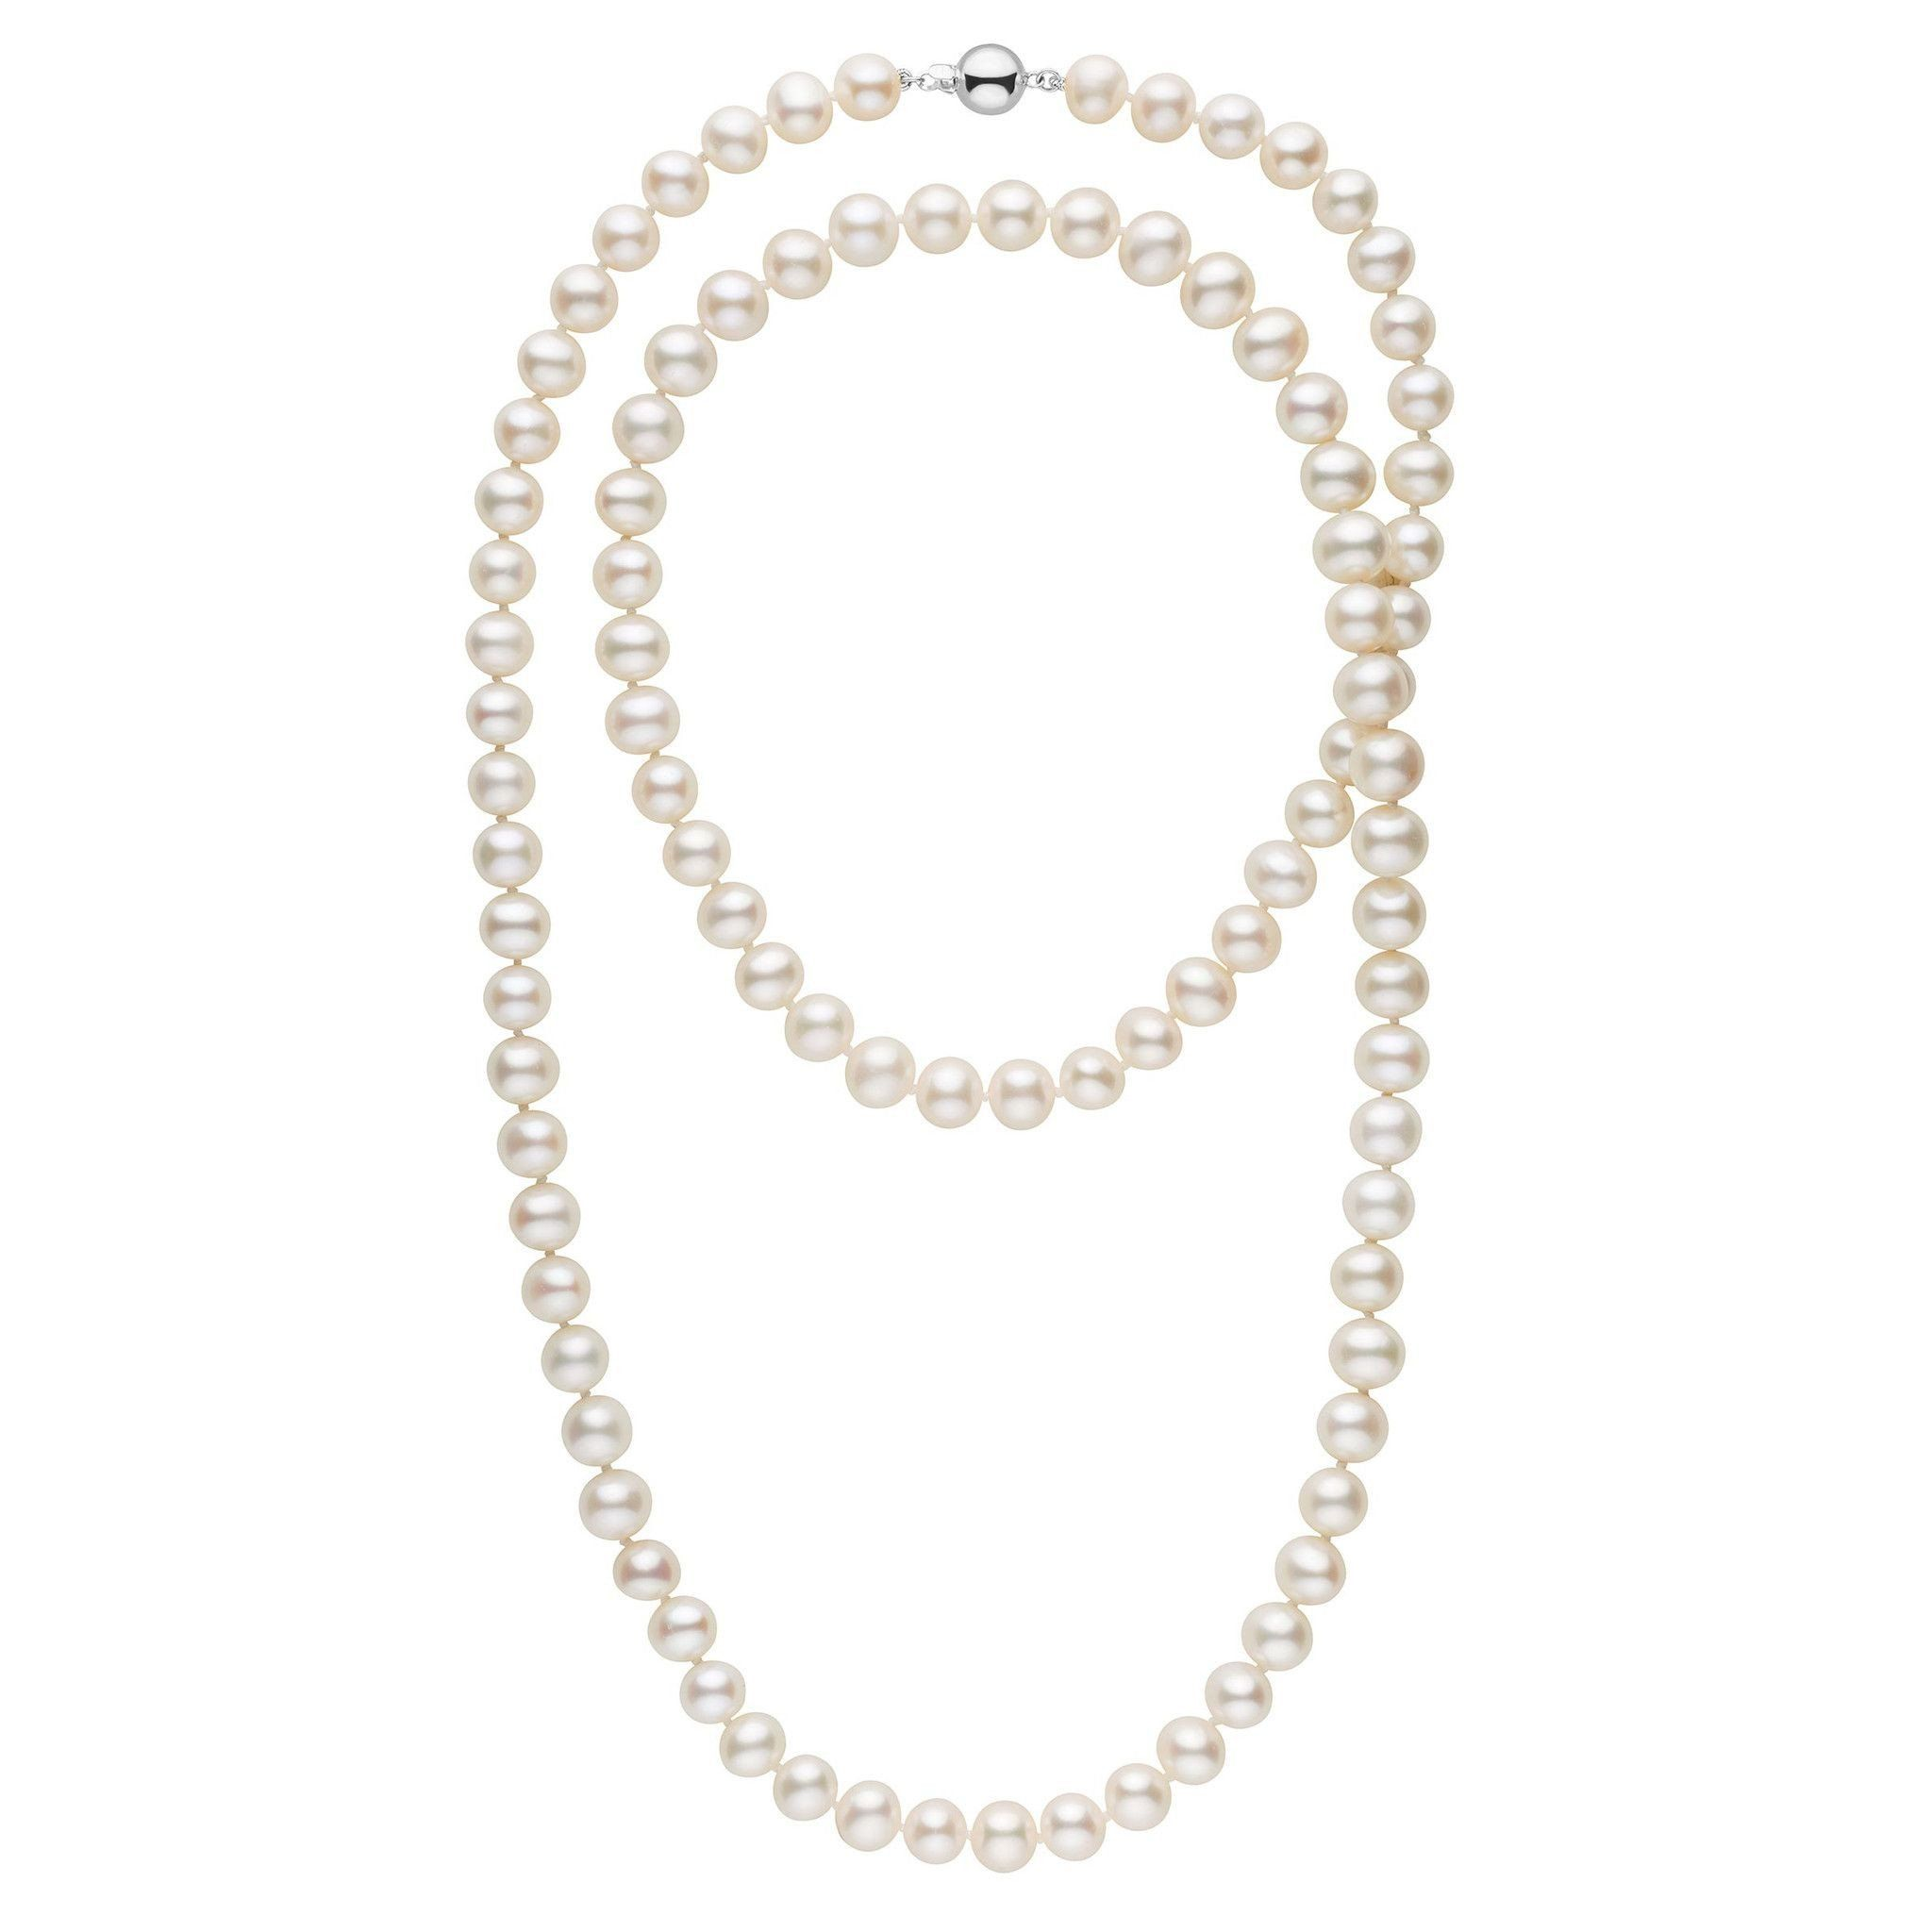 35-inch 8.5-9.0 mm AA+ White Freshwater Pearl Necklace